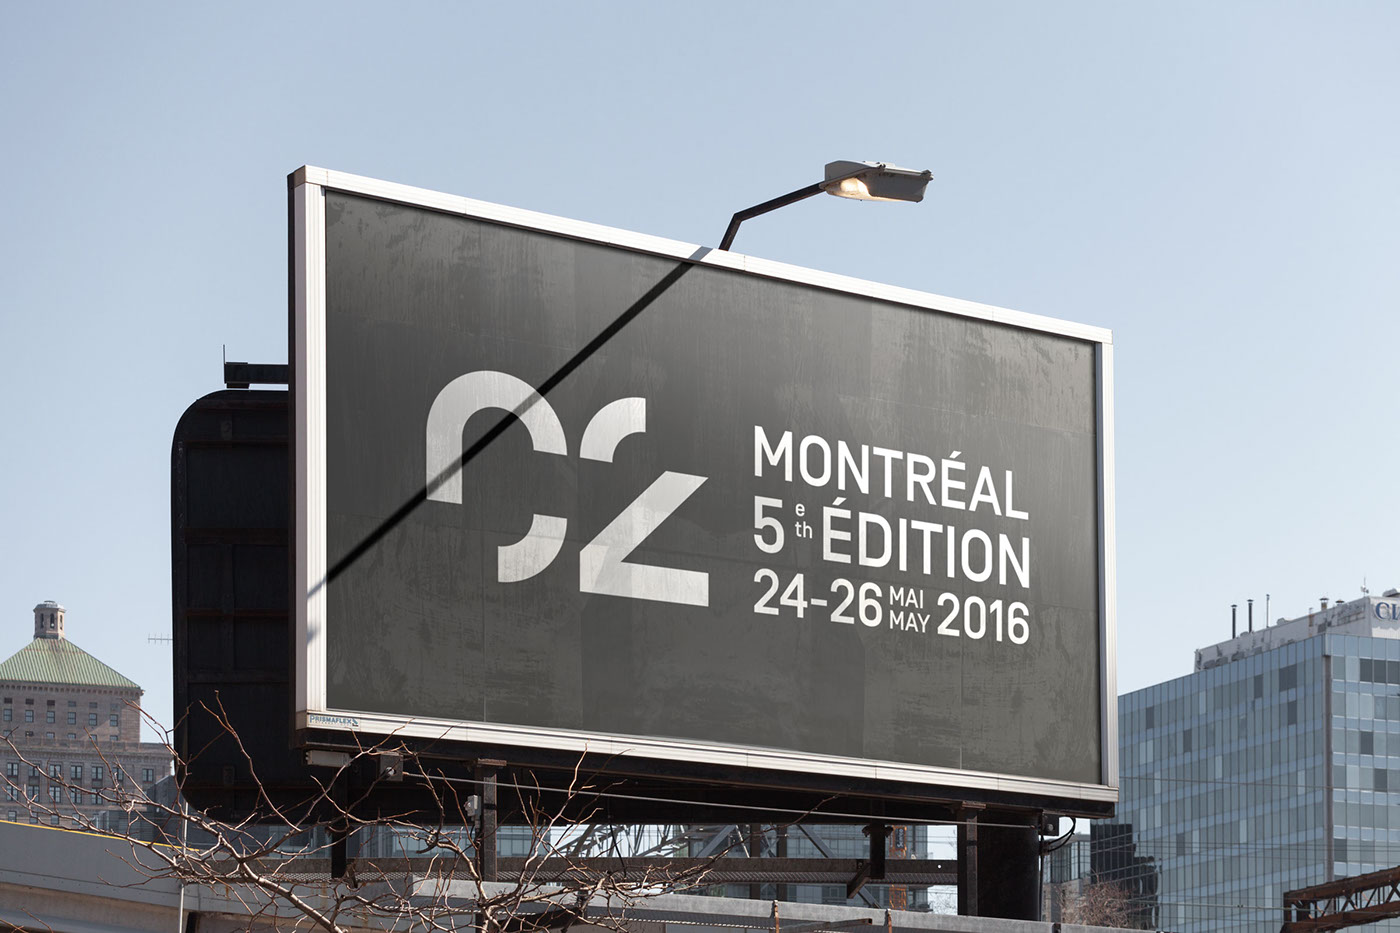 C2,Montreal,graphic,design,logo,identity,brand,business,conference,International,c2mtl,Creativity,commerce,start-up